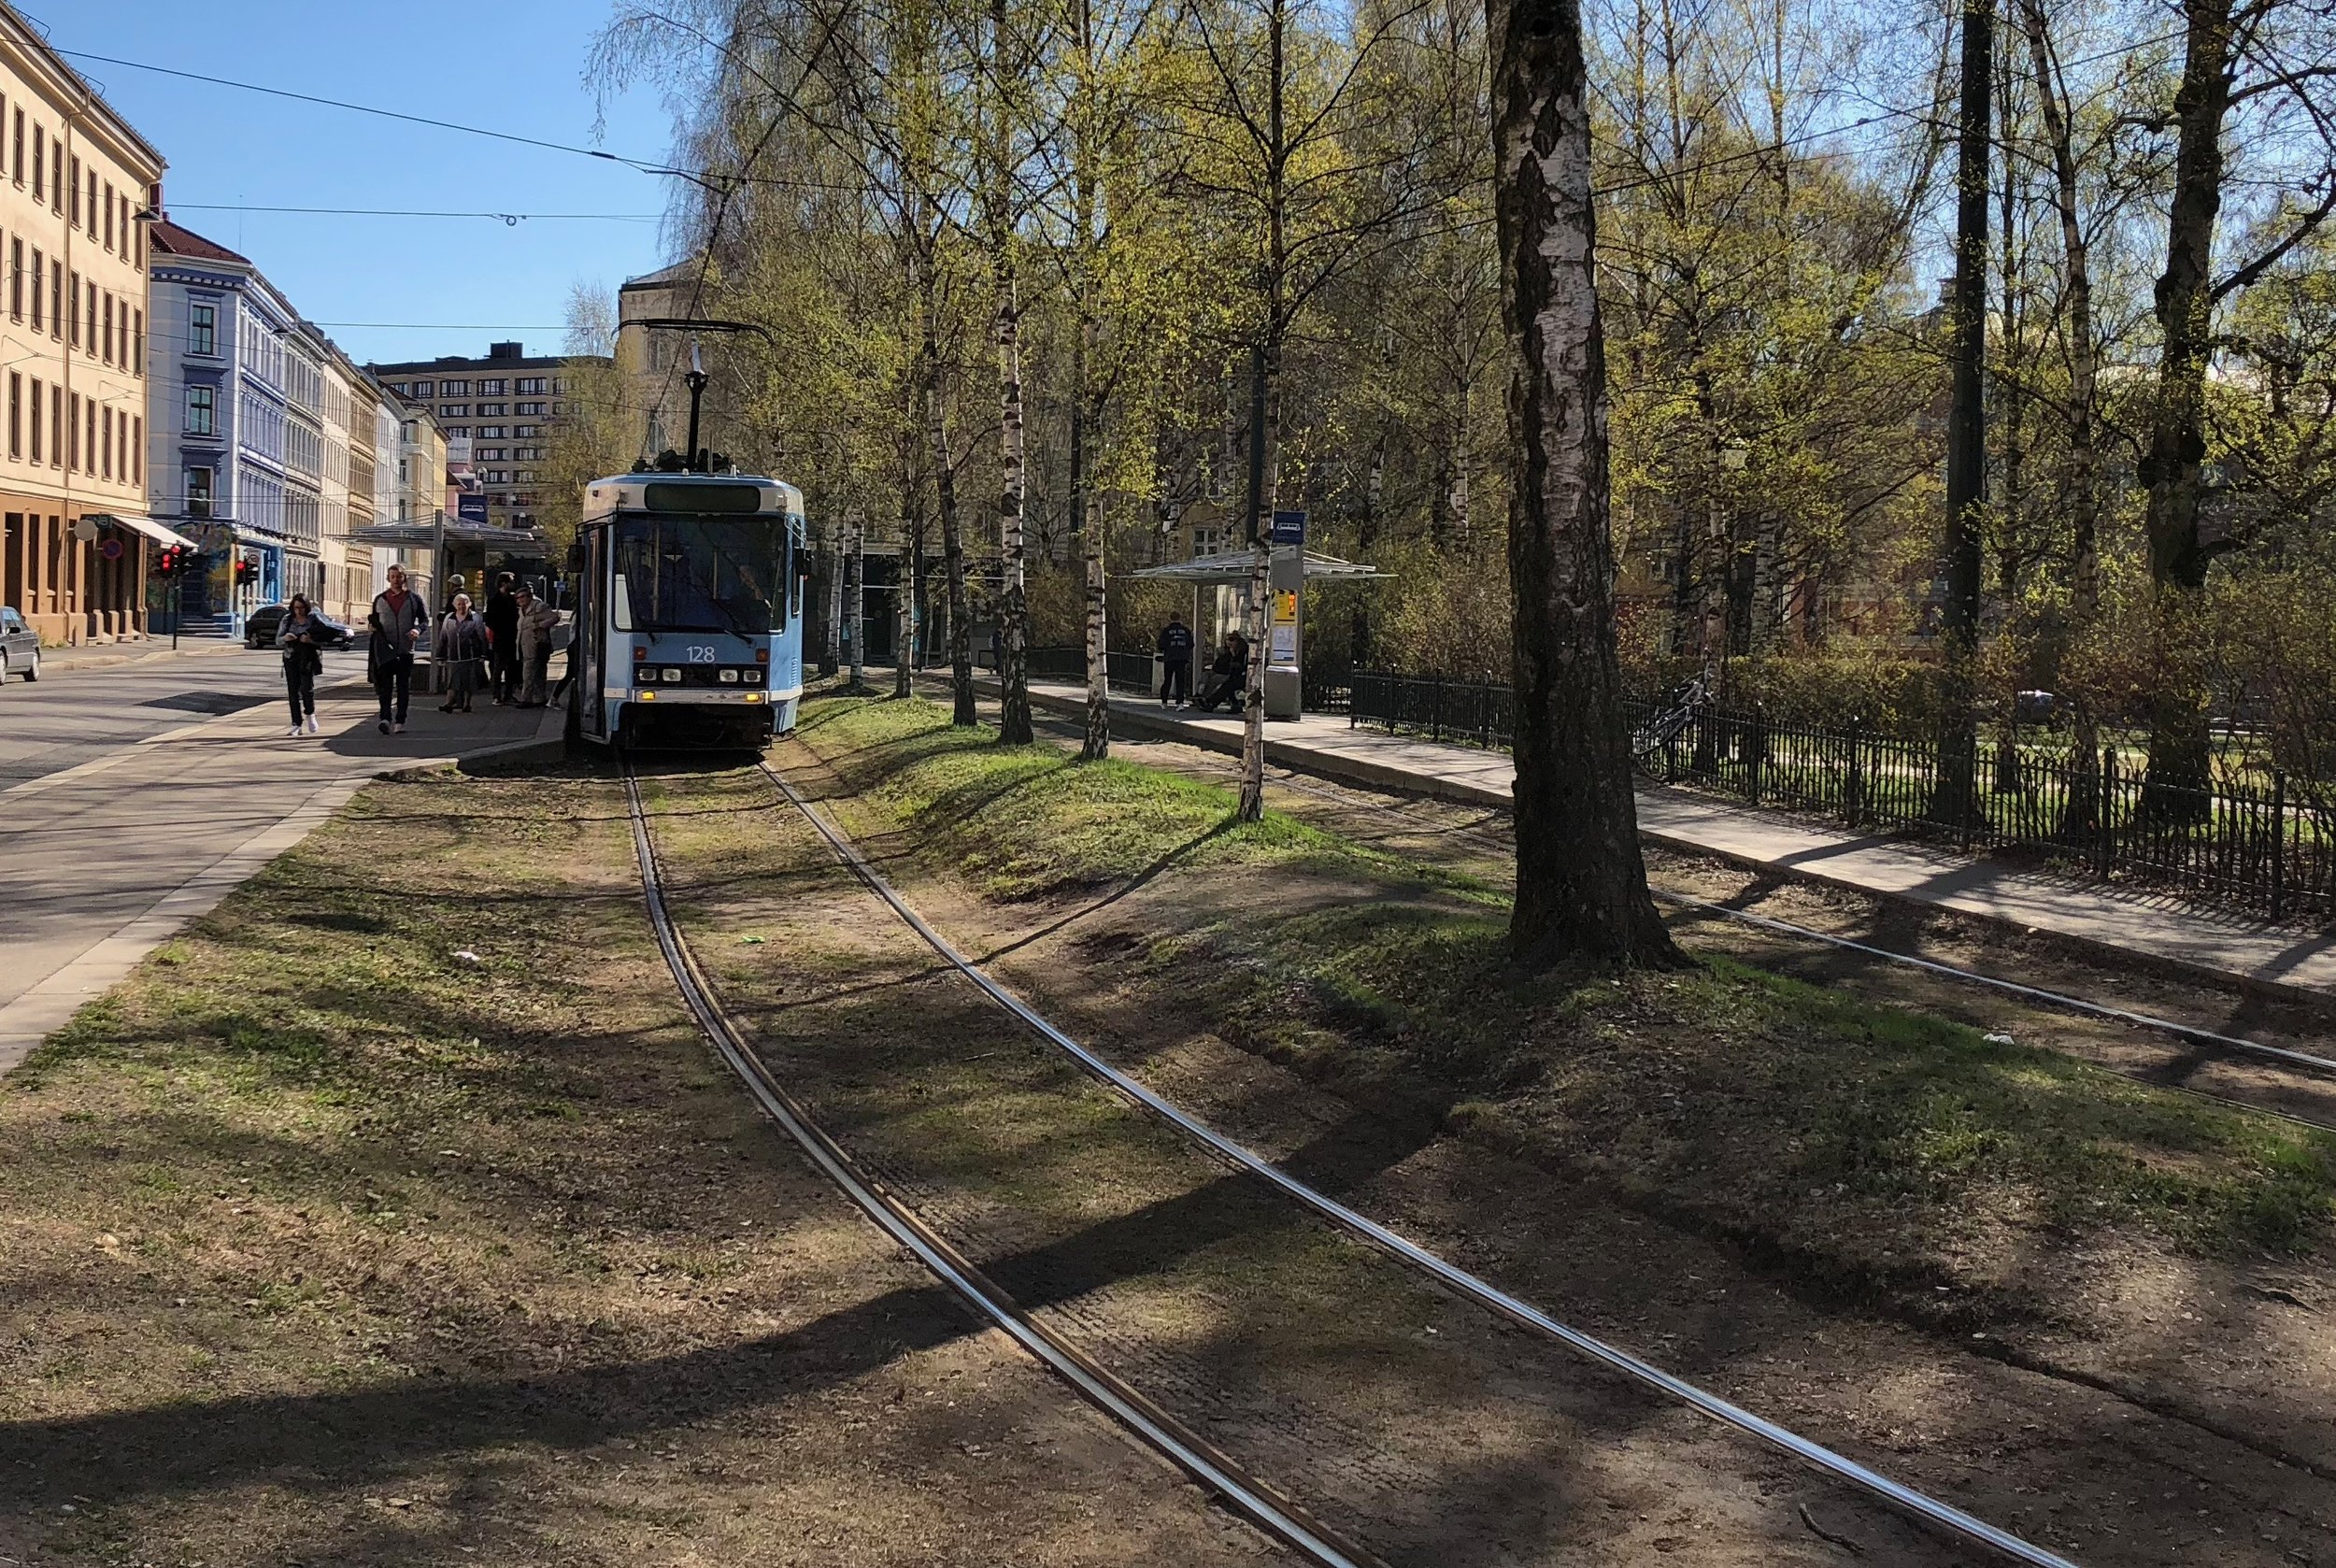 Trams in Oslo, Norway, thread gracefully around local parks.